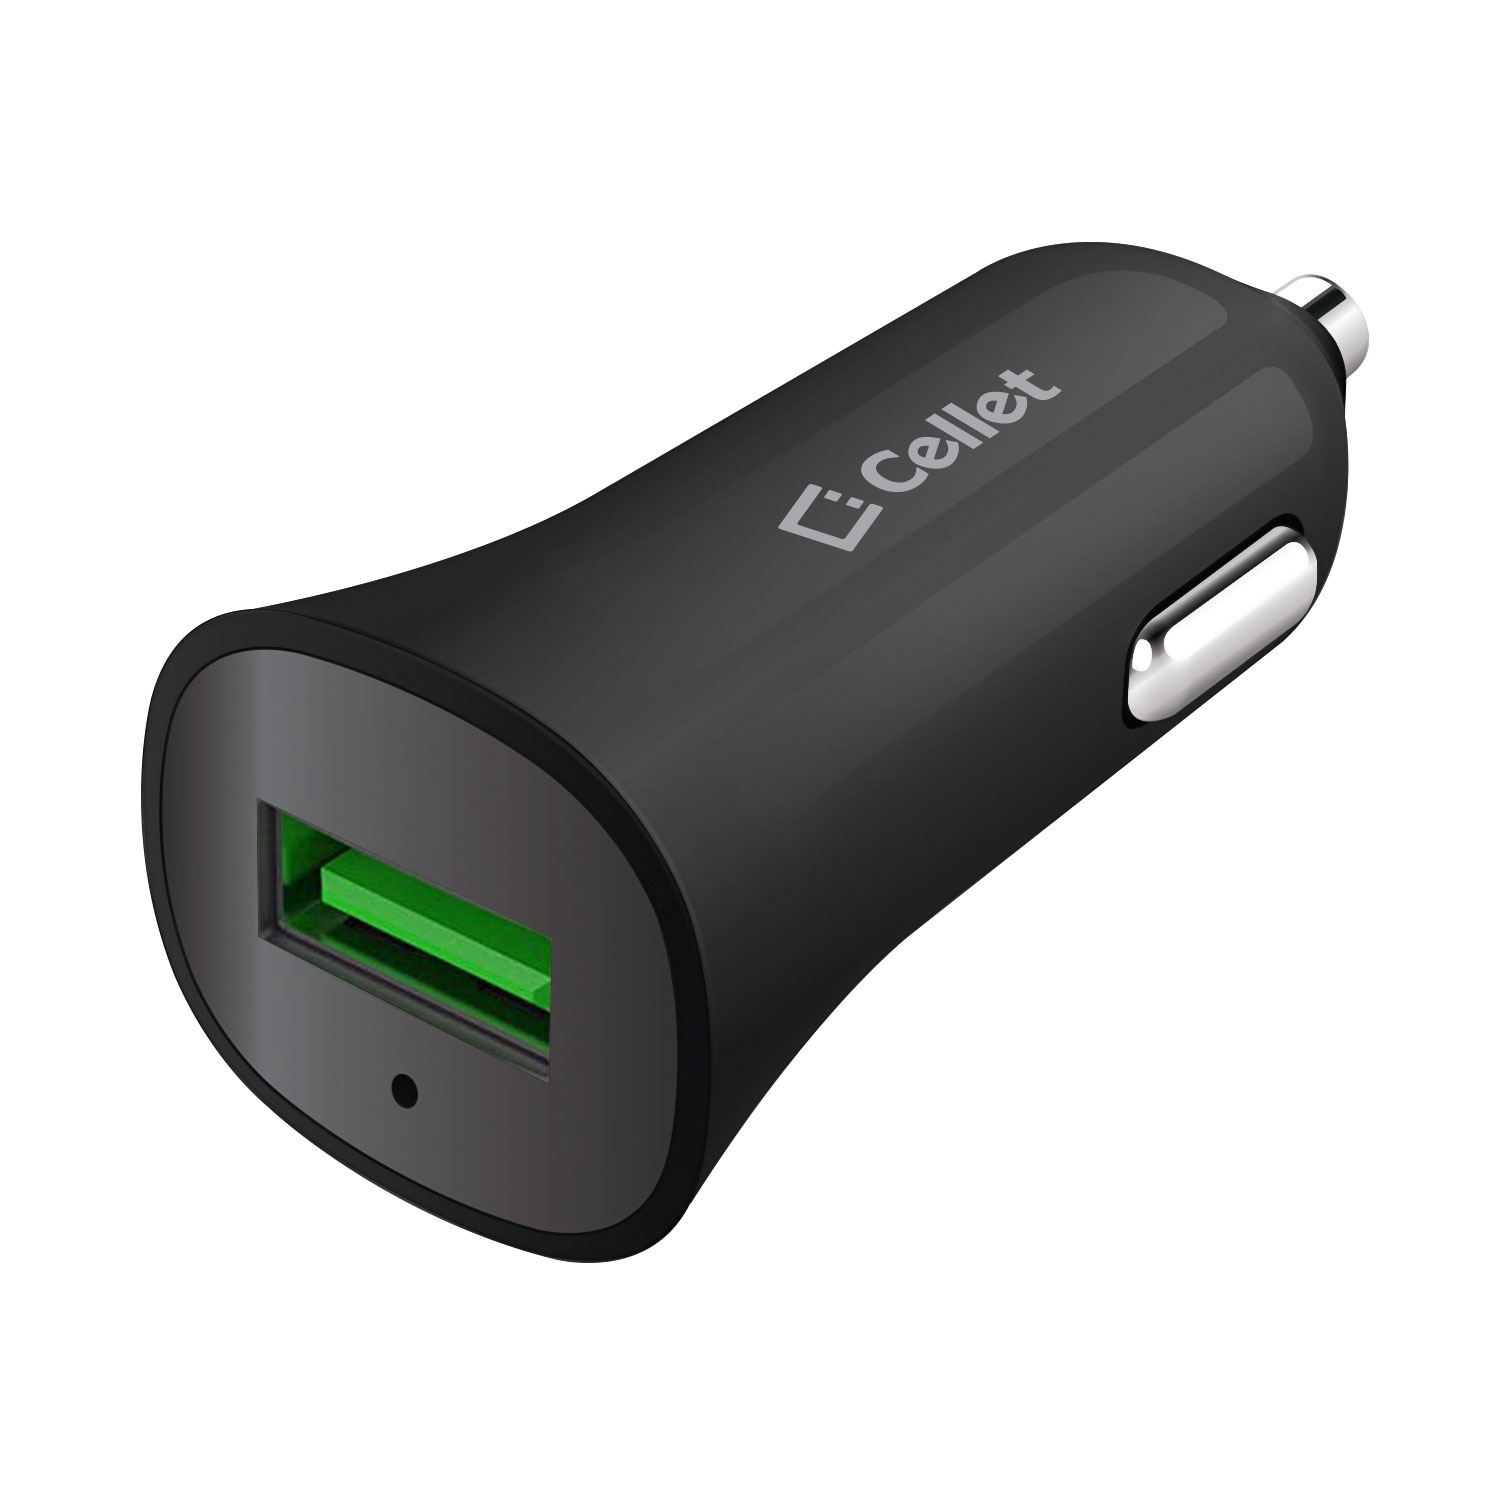 Asus PadFone X mini Car Charger Quick Charge 3.0 Black 3.3ft